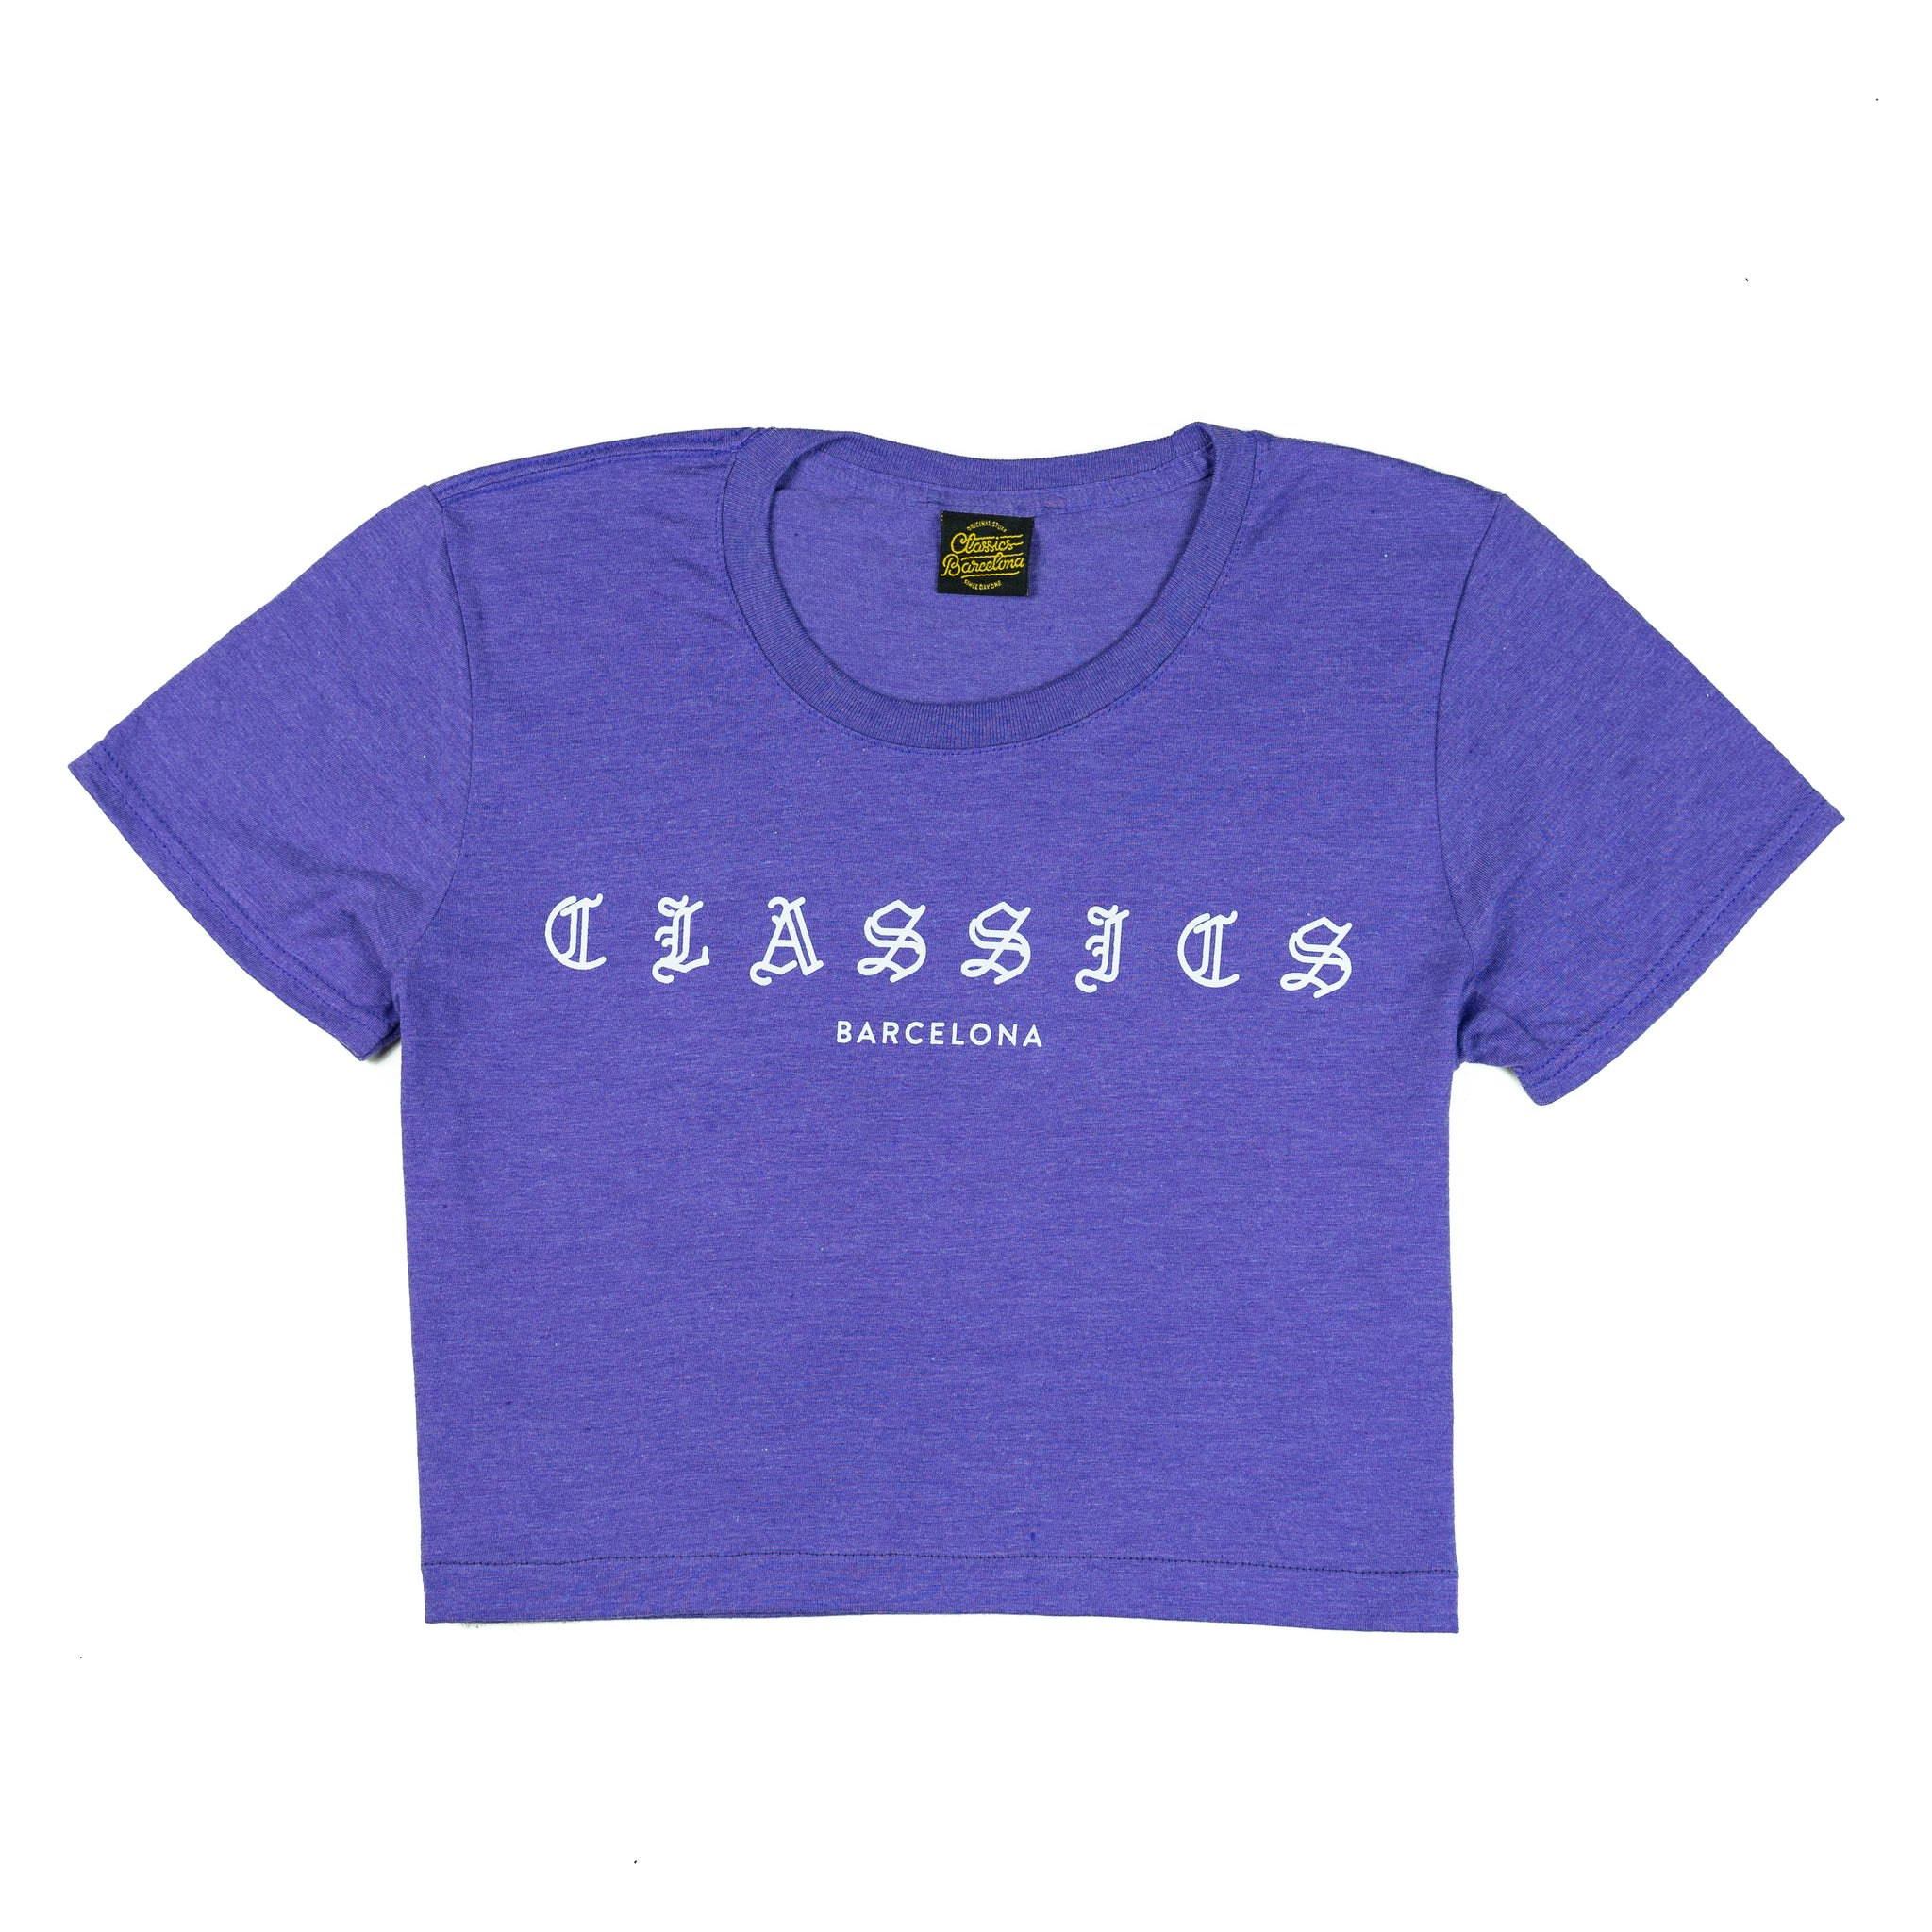 G Quarter Crop Top - Heather Aubergine